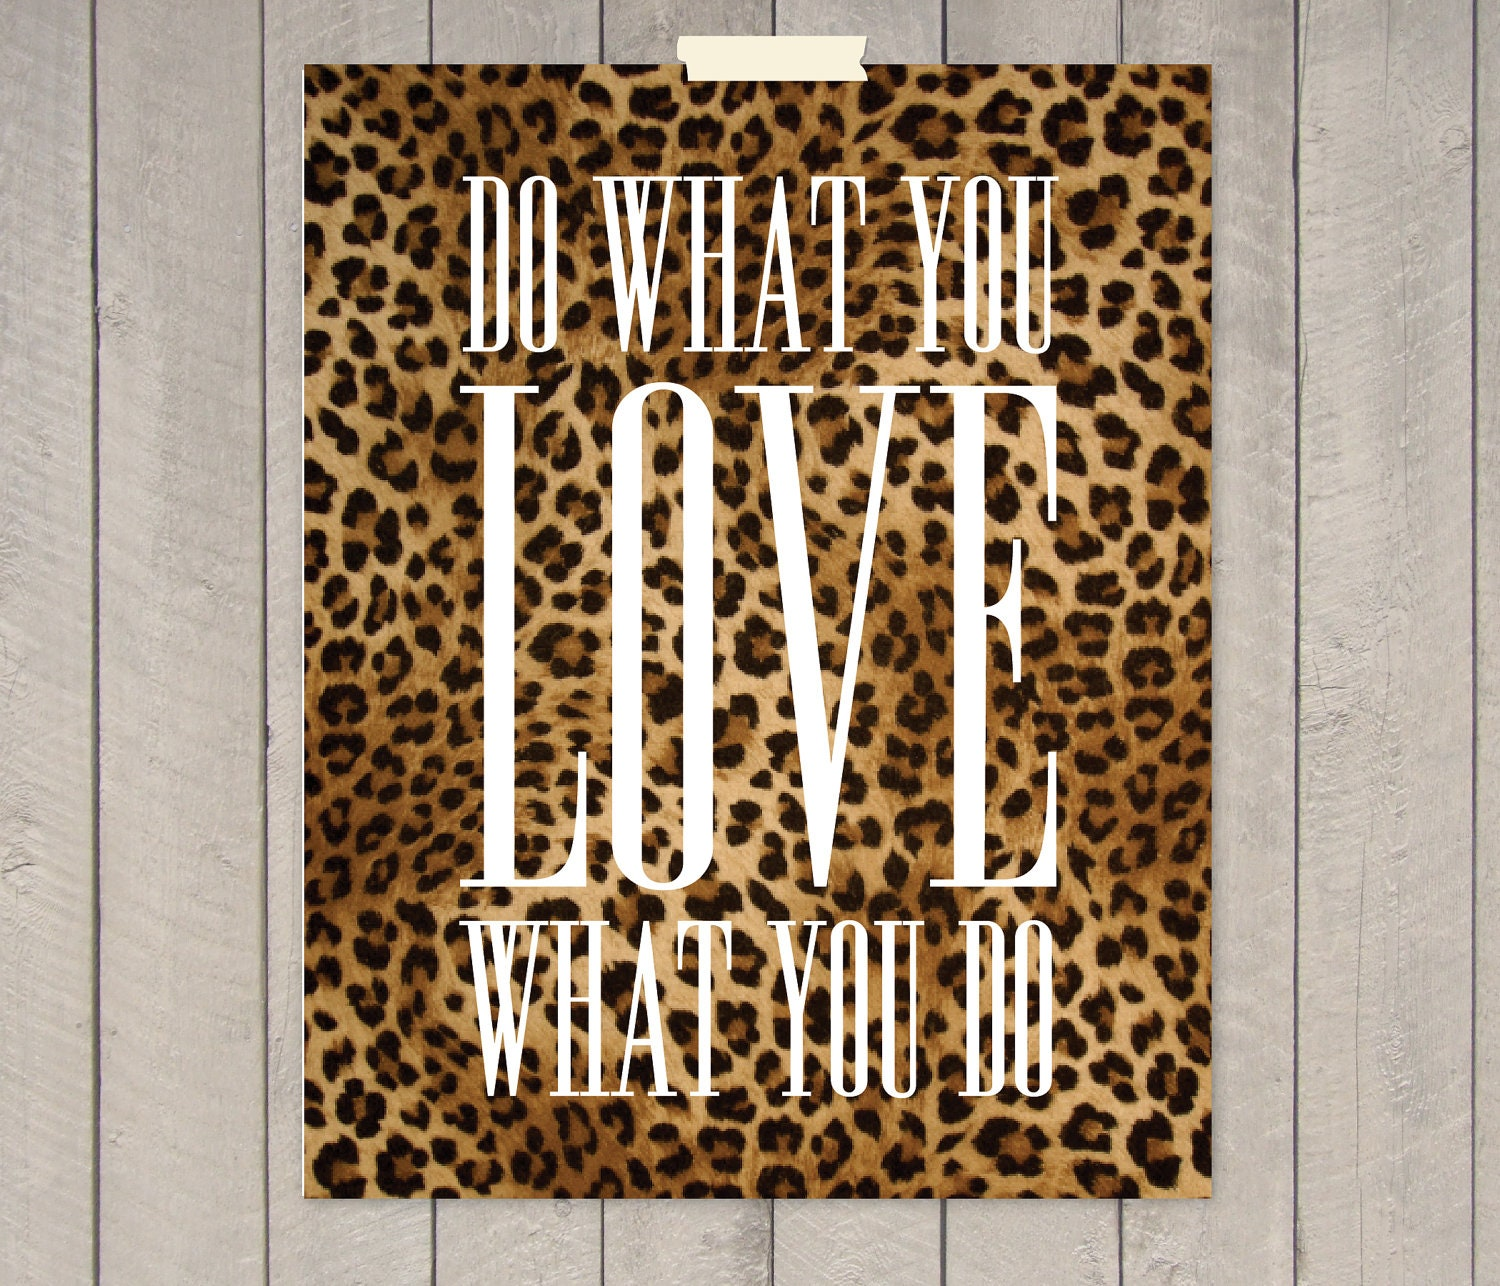 "Do what you LOVE, what you do - 8 x 10"" Print"